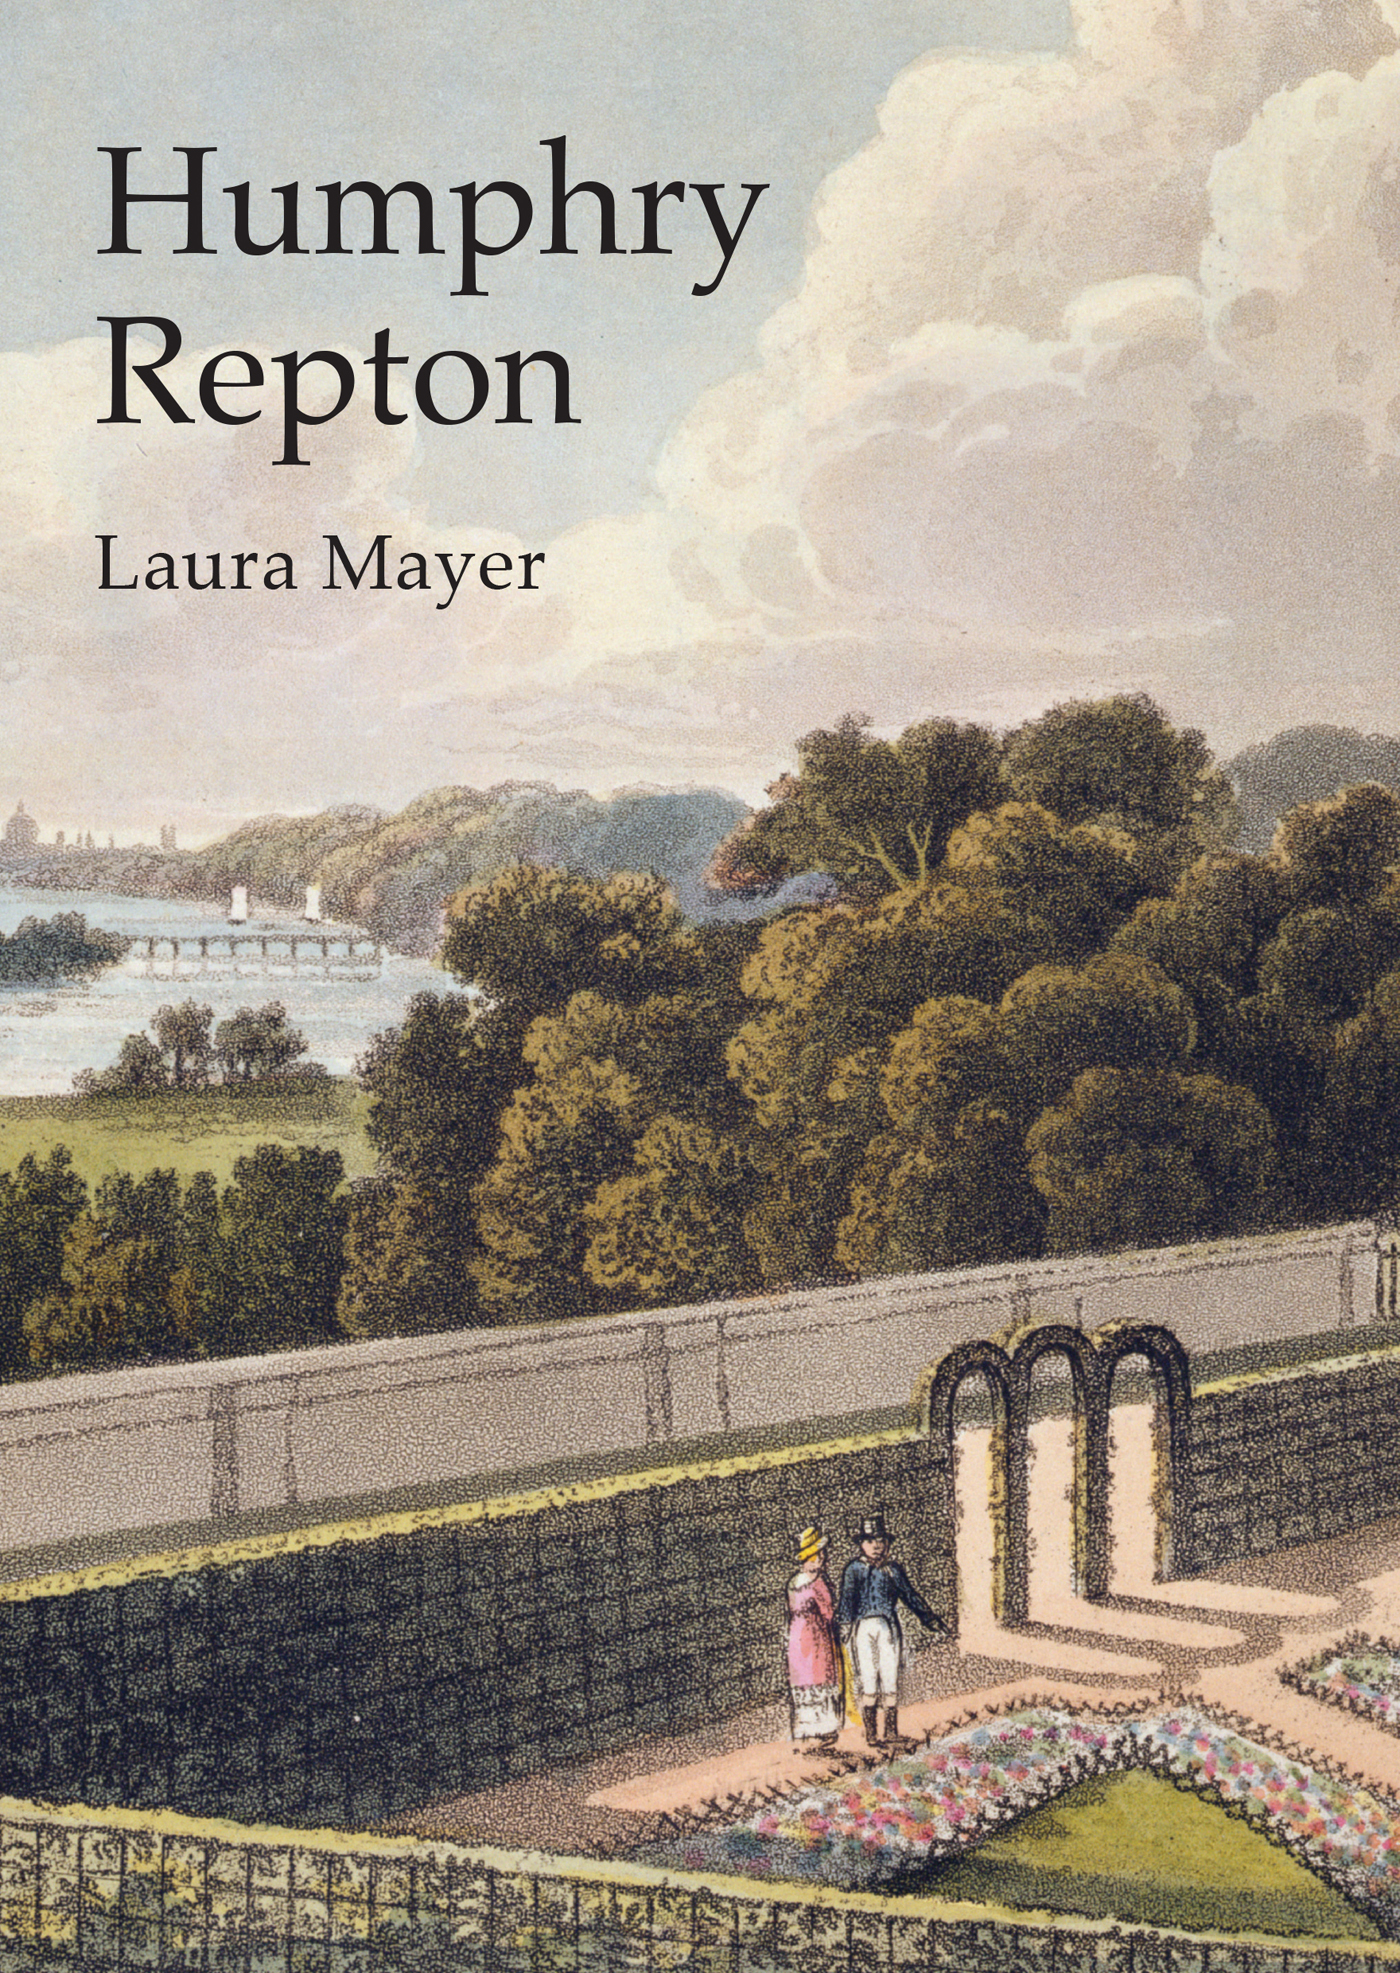 Humphry Repton: The Polite Art of Landscape